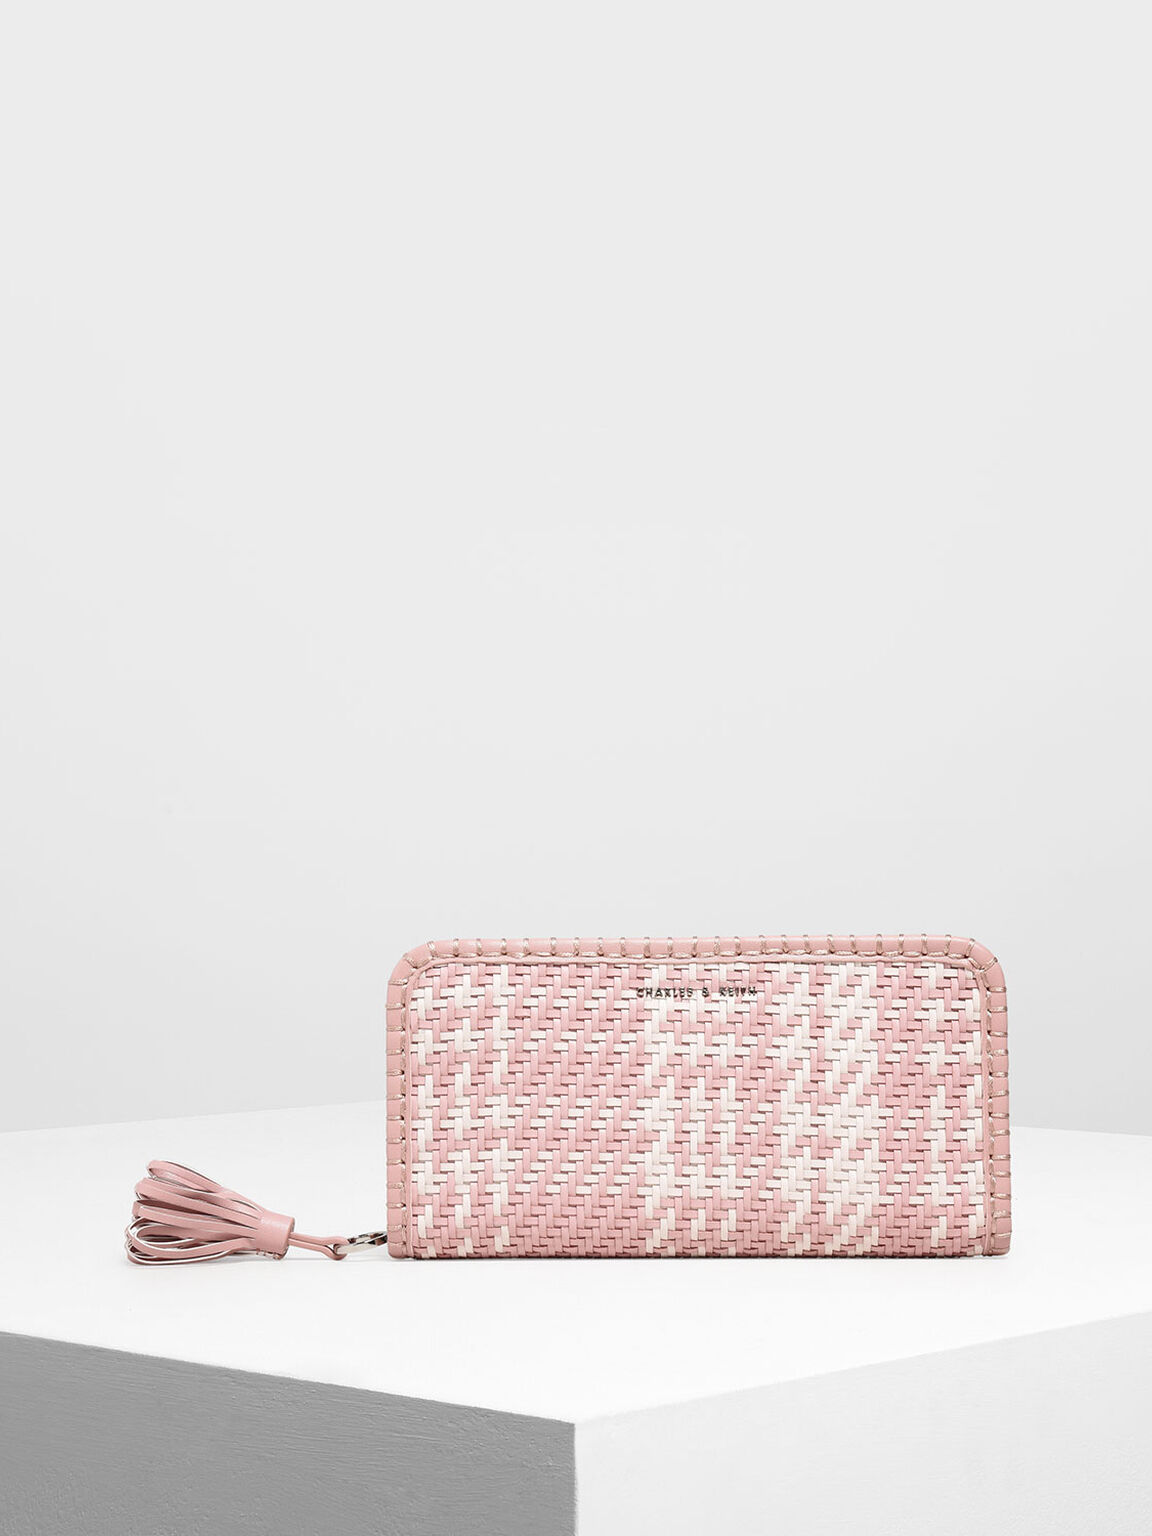 Woven Tassel Zip Around Wallet, Light Pink, hi-res